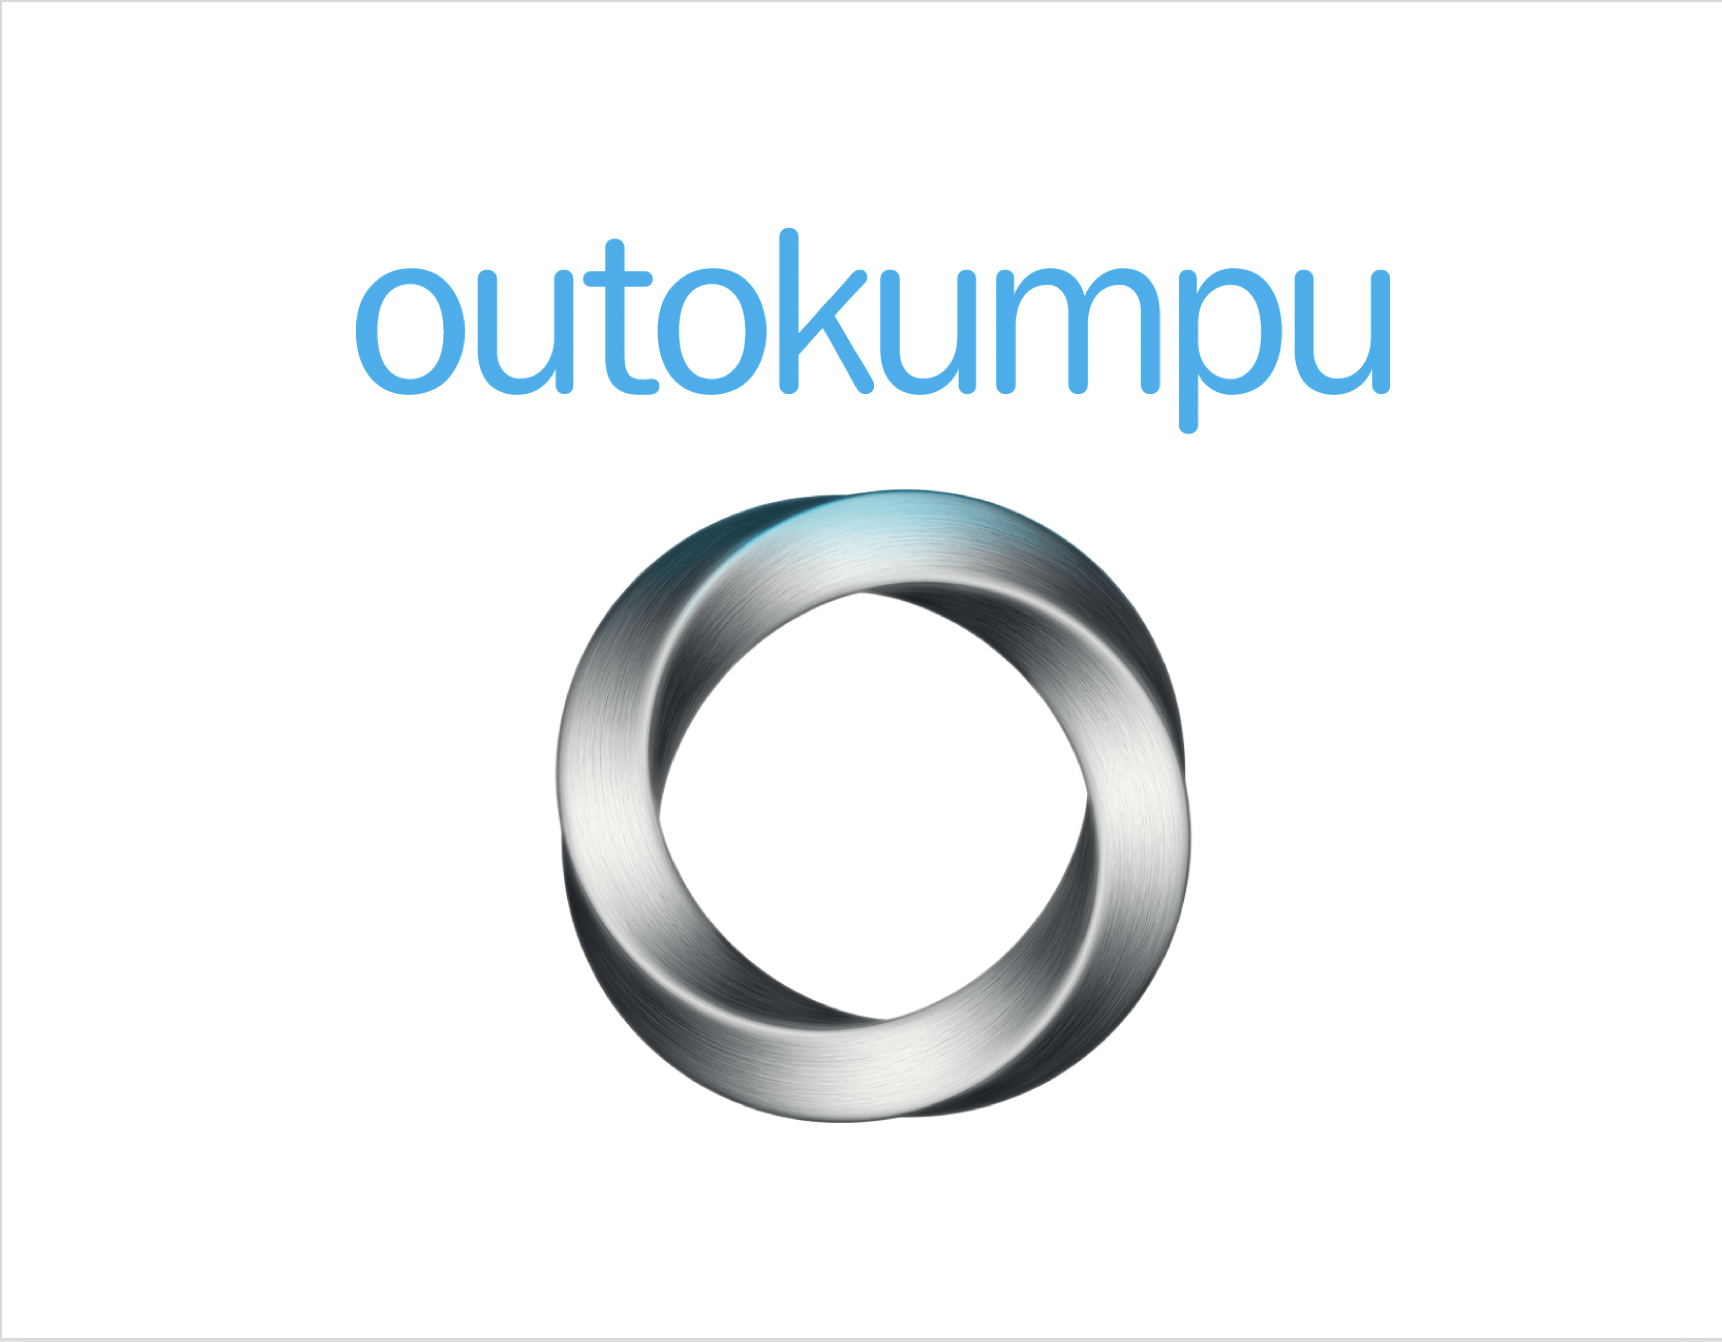 Outokumpu: Marine scrubbers sail ahead with specialist stainless steels